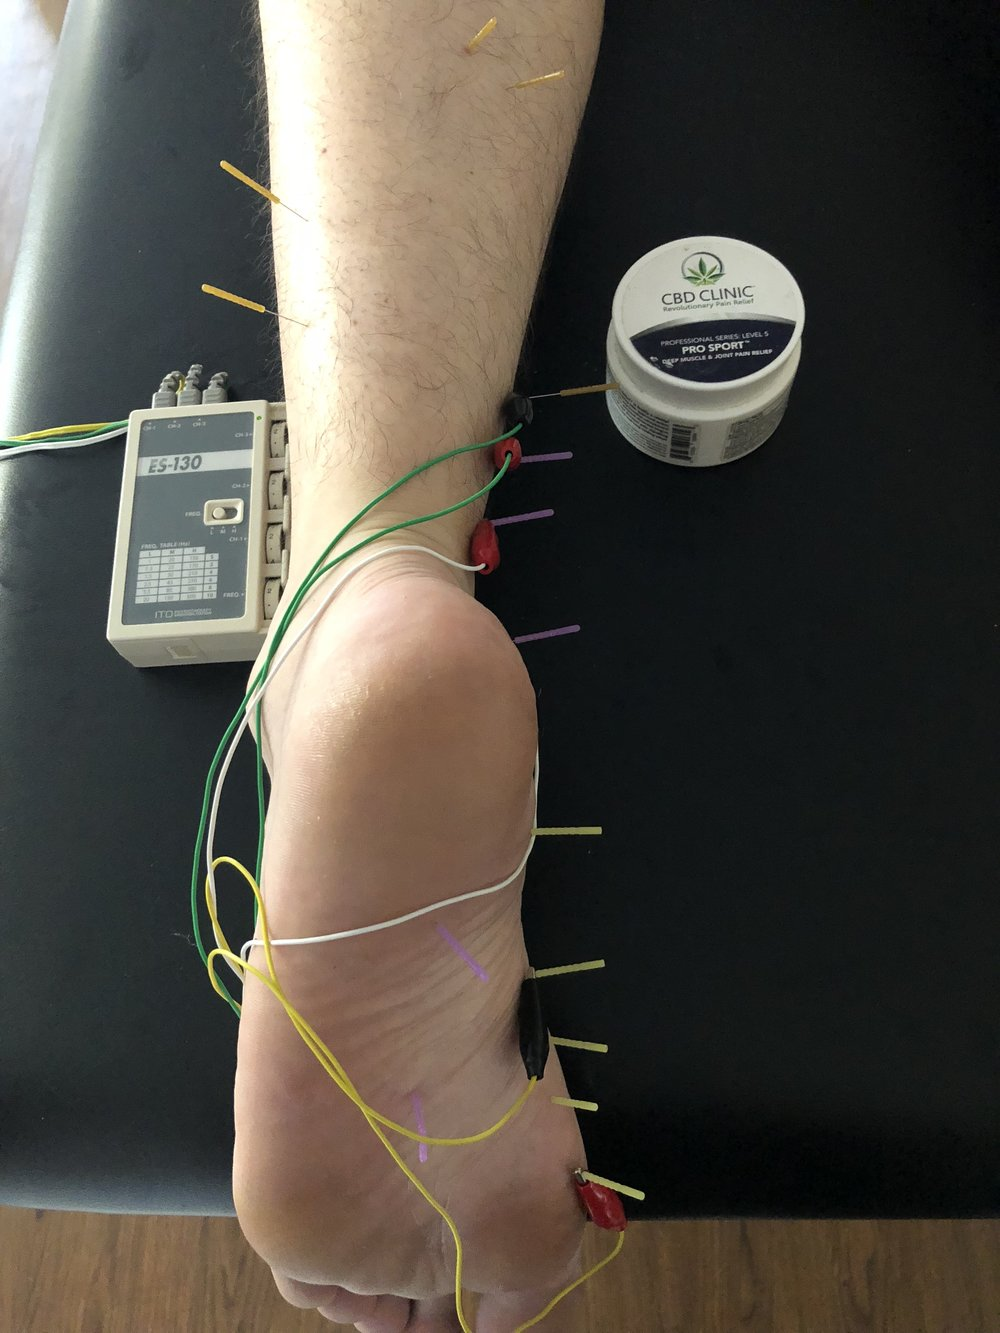 Dry Needling - According to the APTA, Dry needling involves the use of a thin filiform needle that penetrates the skin and stimulates underlying myofascial trigger points and muscular and connective tissues for the management of neuro-musculoskeletal pain and movement impairments.Dr. Kevin Landreneau received his training in Dry Needling from the Spinal Manipulation Institute in 2018. Certification included the completion of two 27 hour long courses that each ended with testing to ensure proficiency.Dry needling is a popular treatment option at Landreneau Physiotherapy and we have seen great results with this technique.